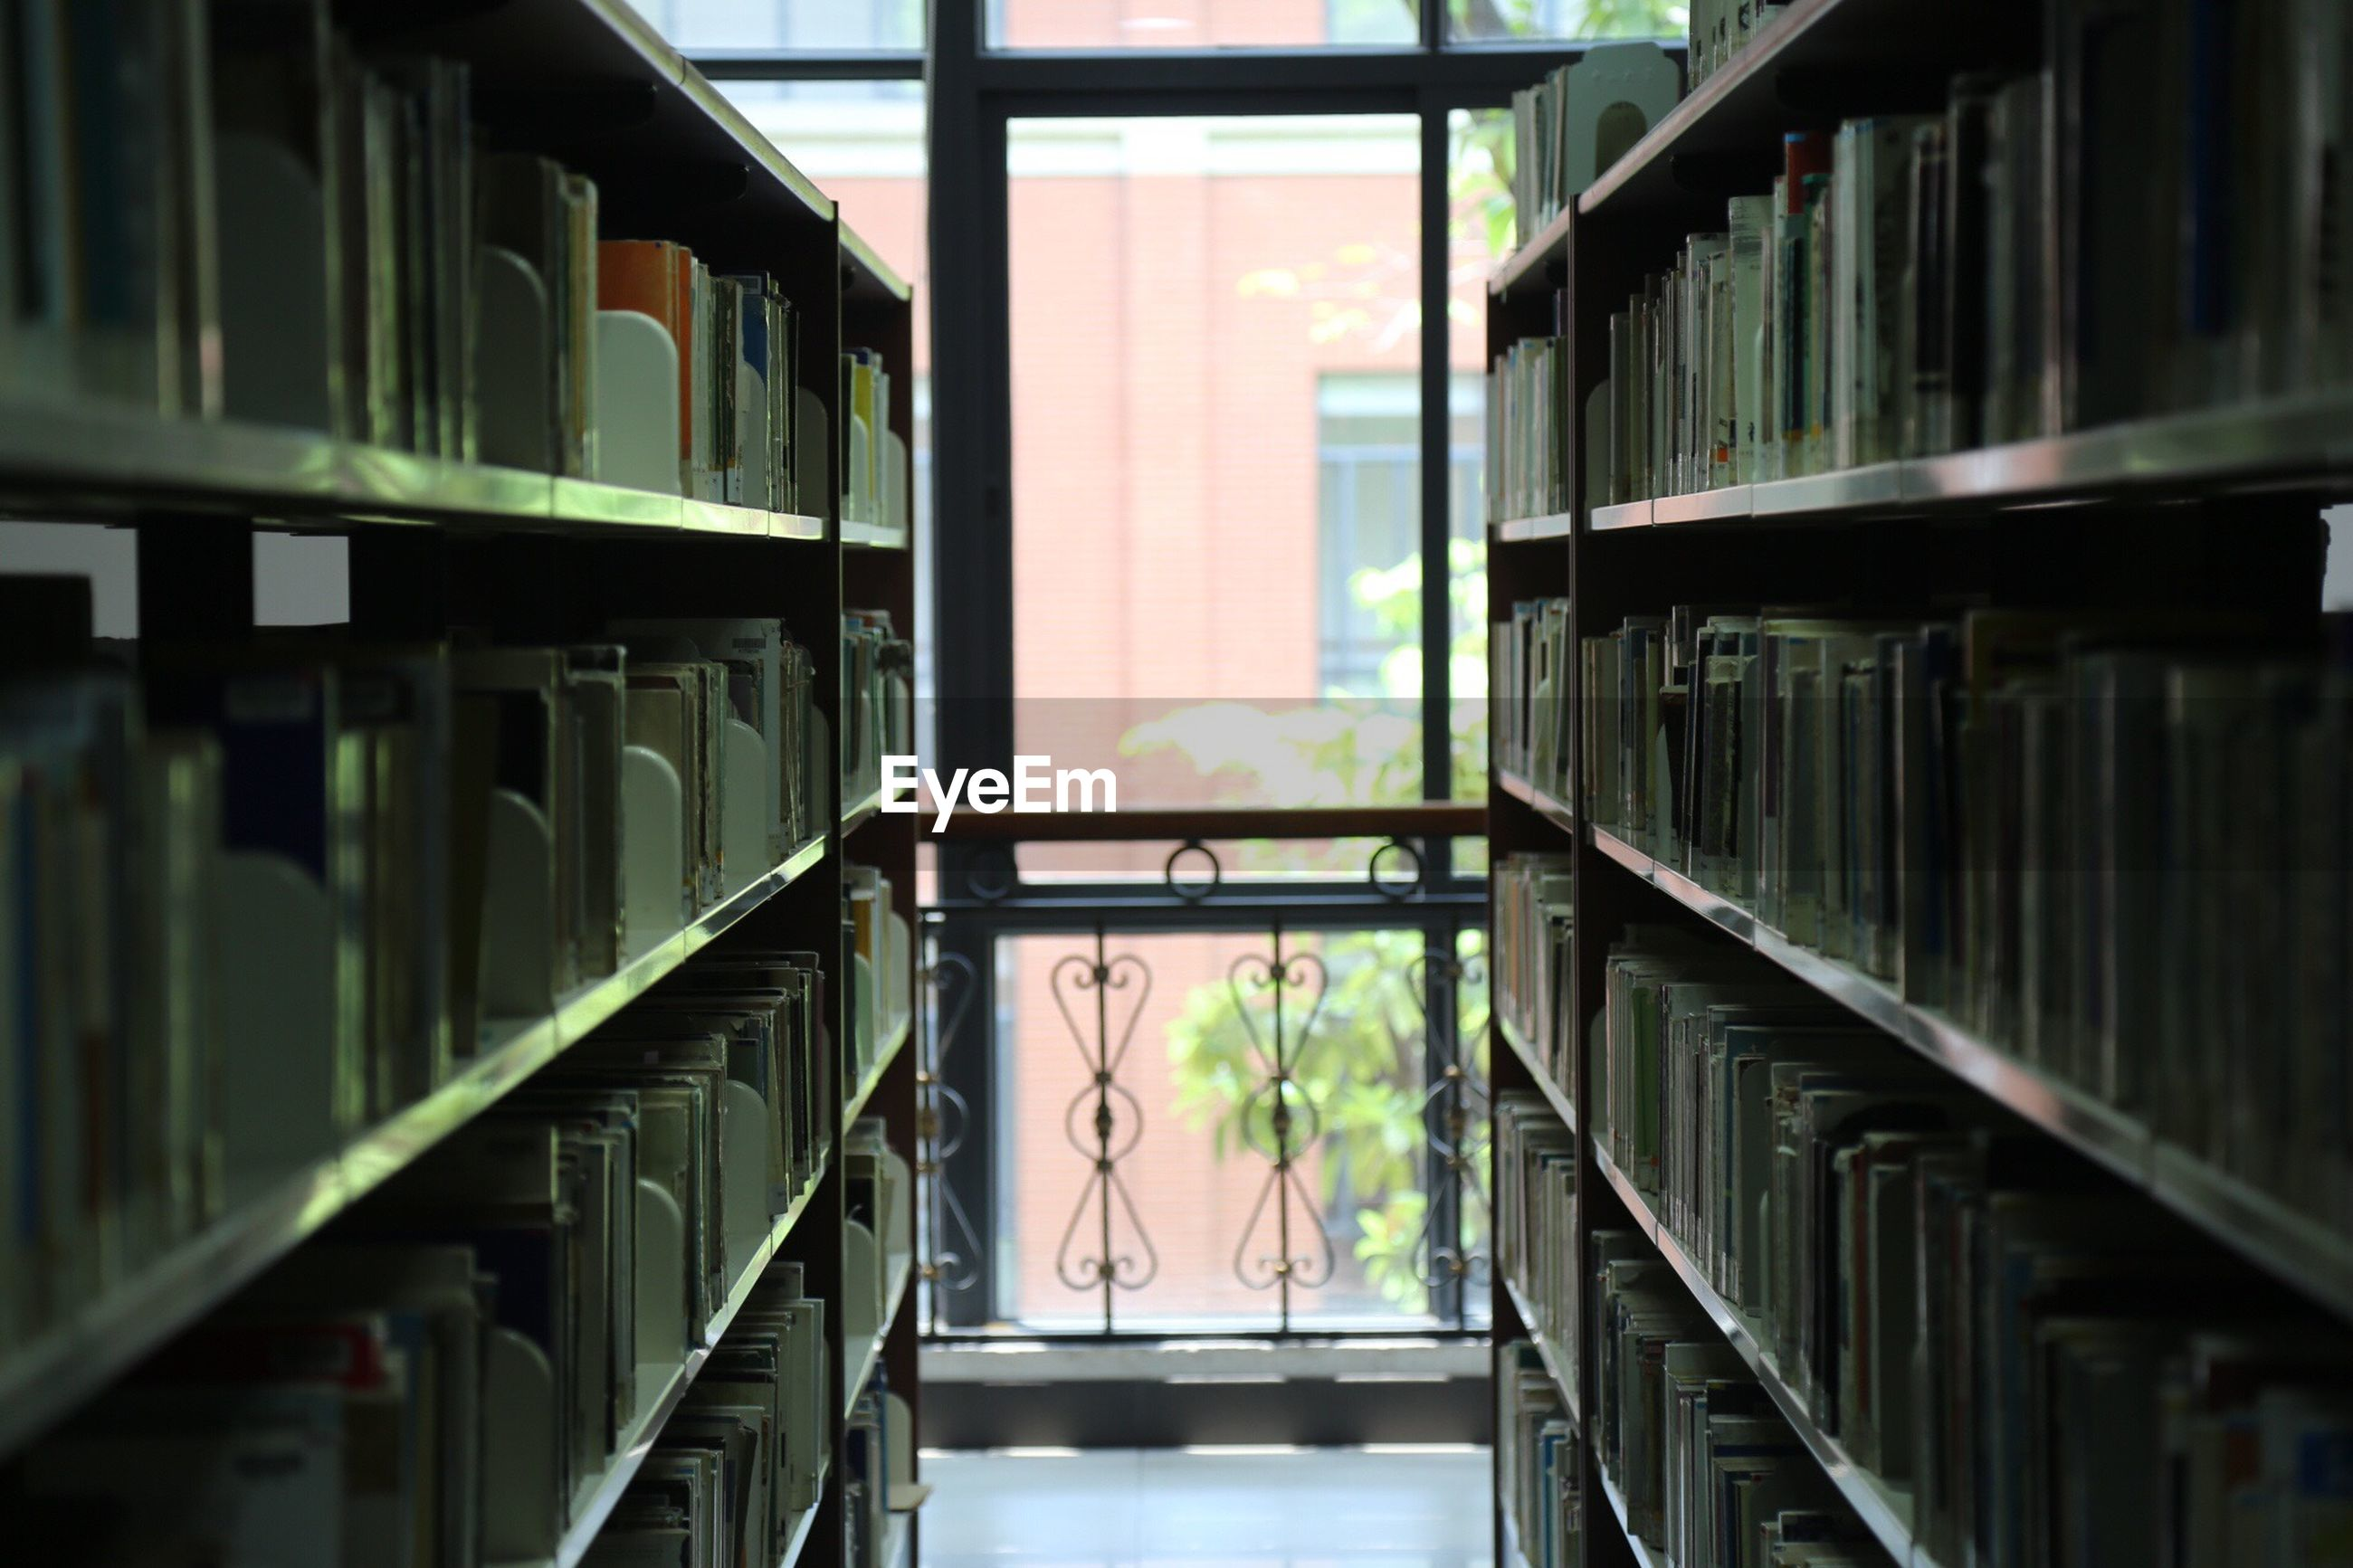 Close-up of books in library